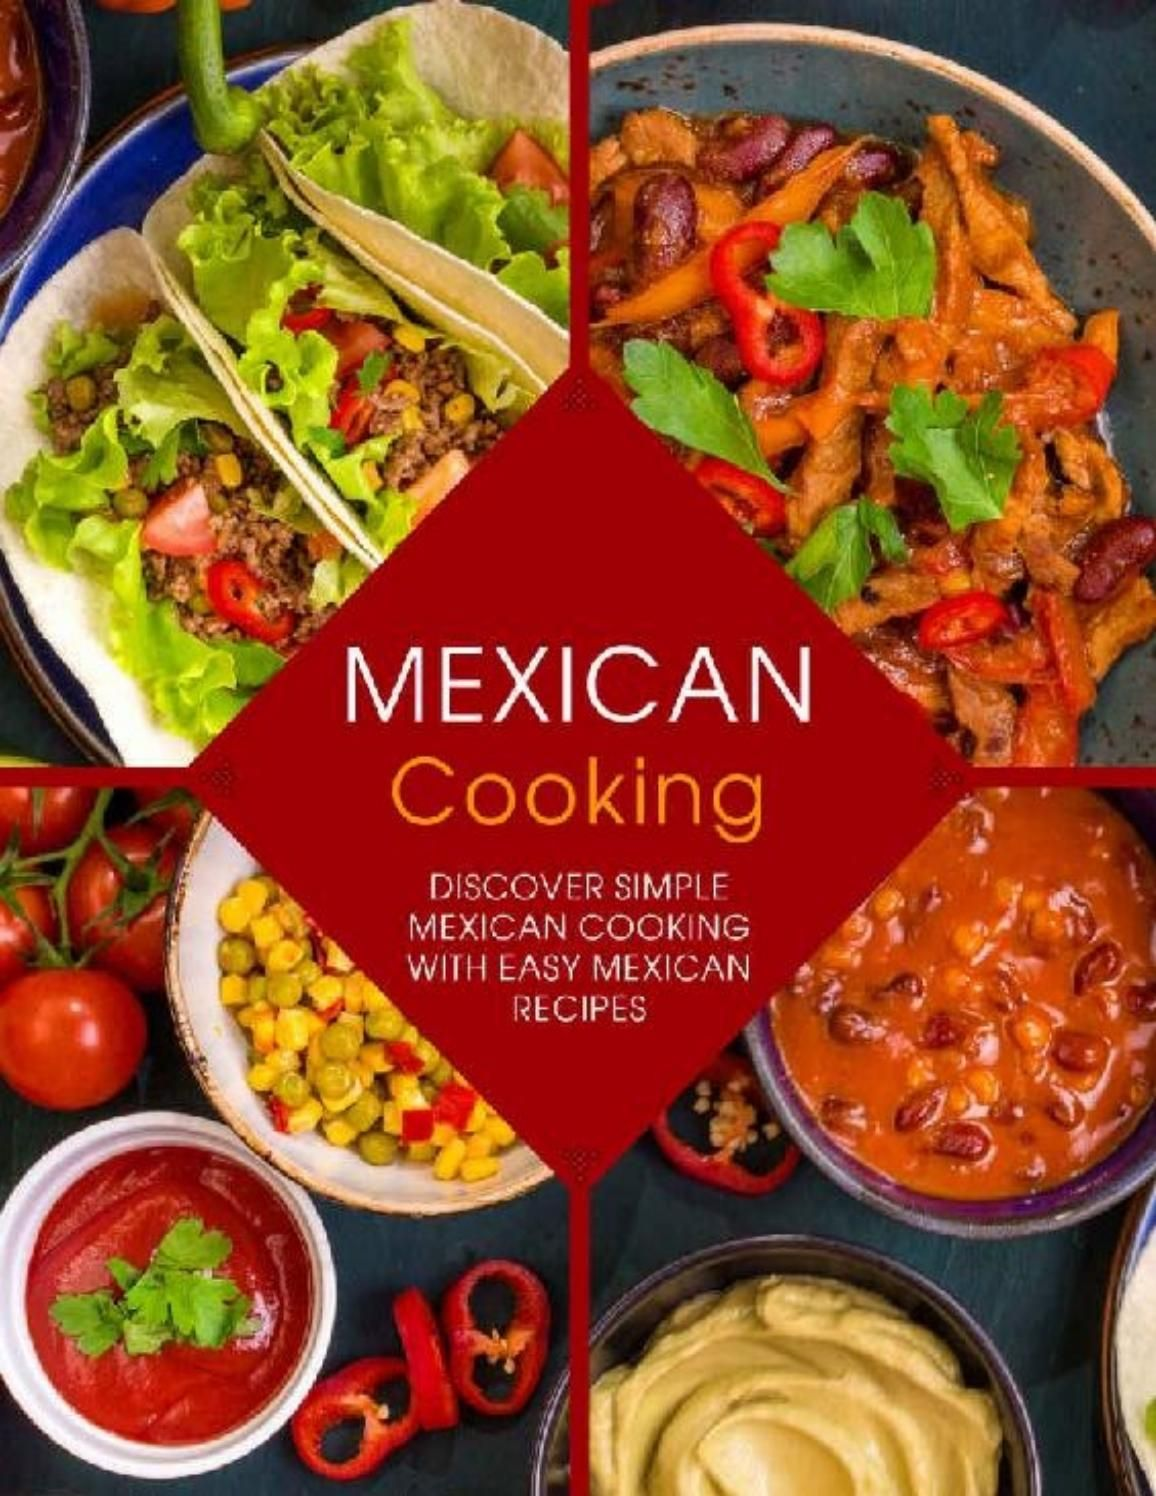 Mexican cooking discover simple mexican cooking with easy mexican mexican cooking discover simple mexican cooking with easy mexican recipes issuu pdf download forumfinder Choice Image